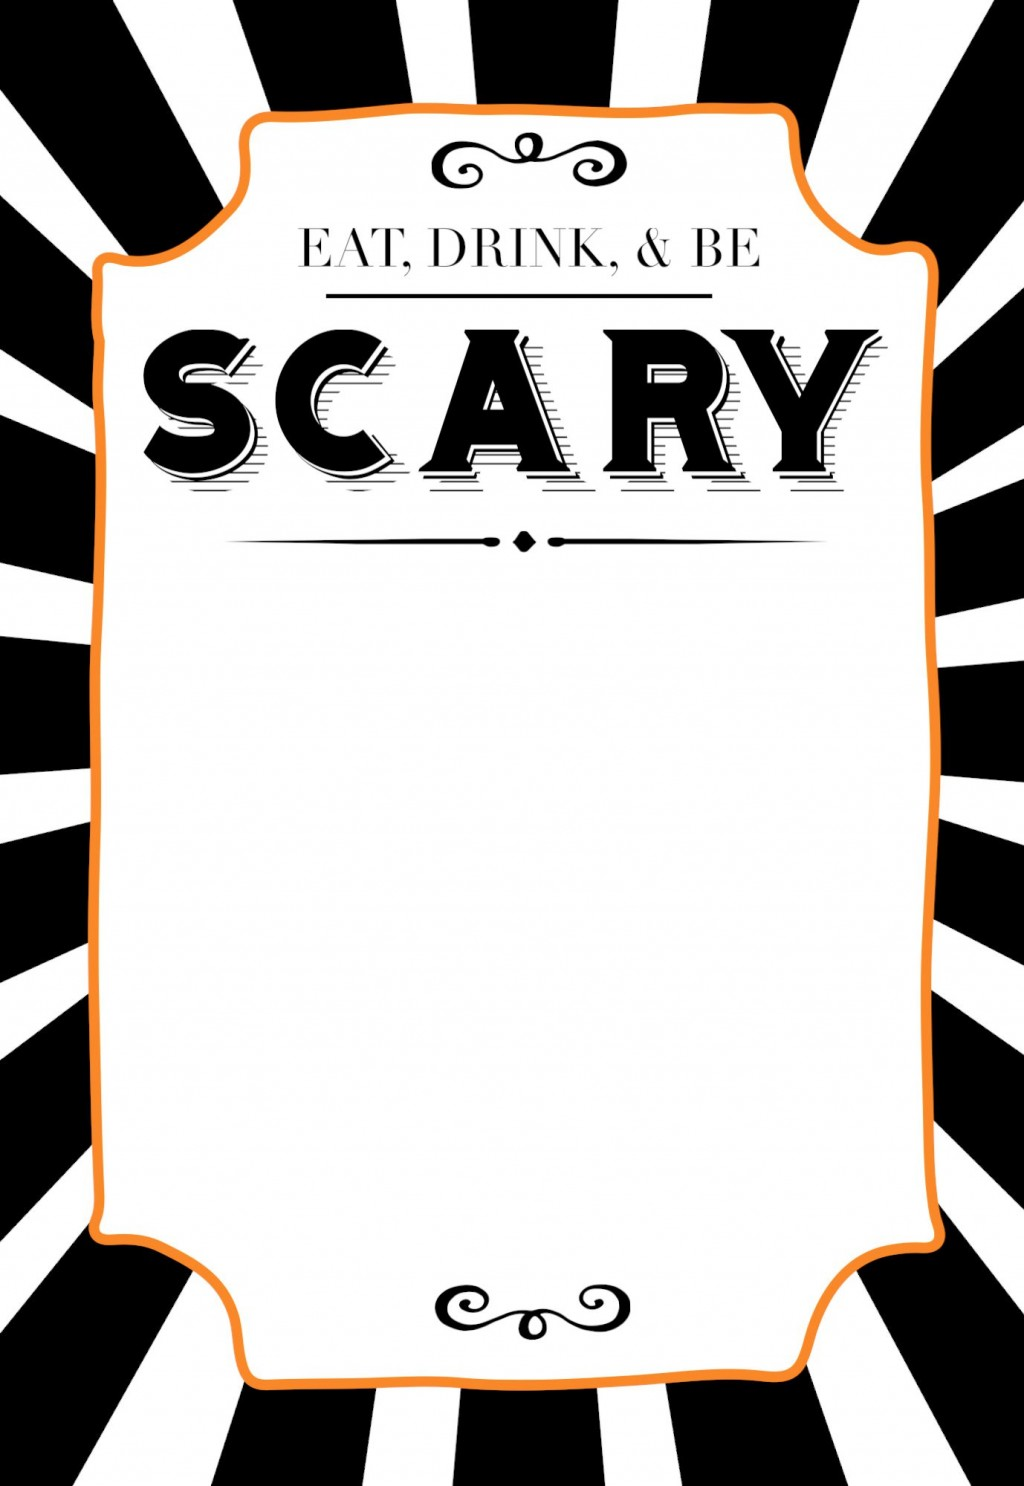 015 Fantastic Free Halloween Invitation Template Highest Quality  Templates Microsoft Word Wedding Printable PartyLarge